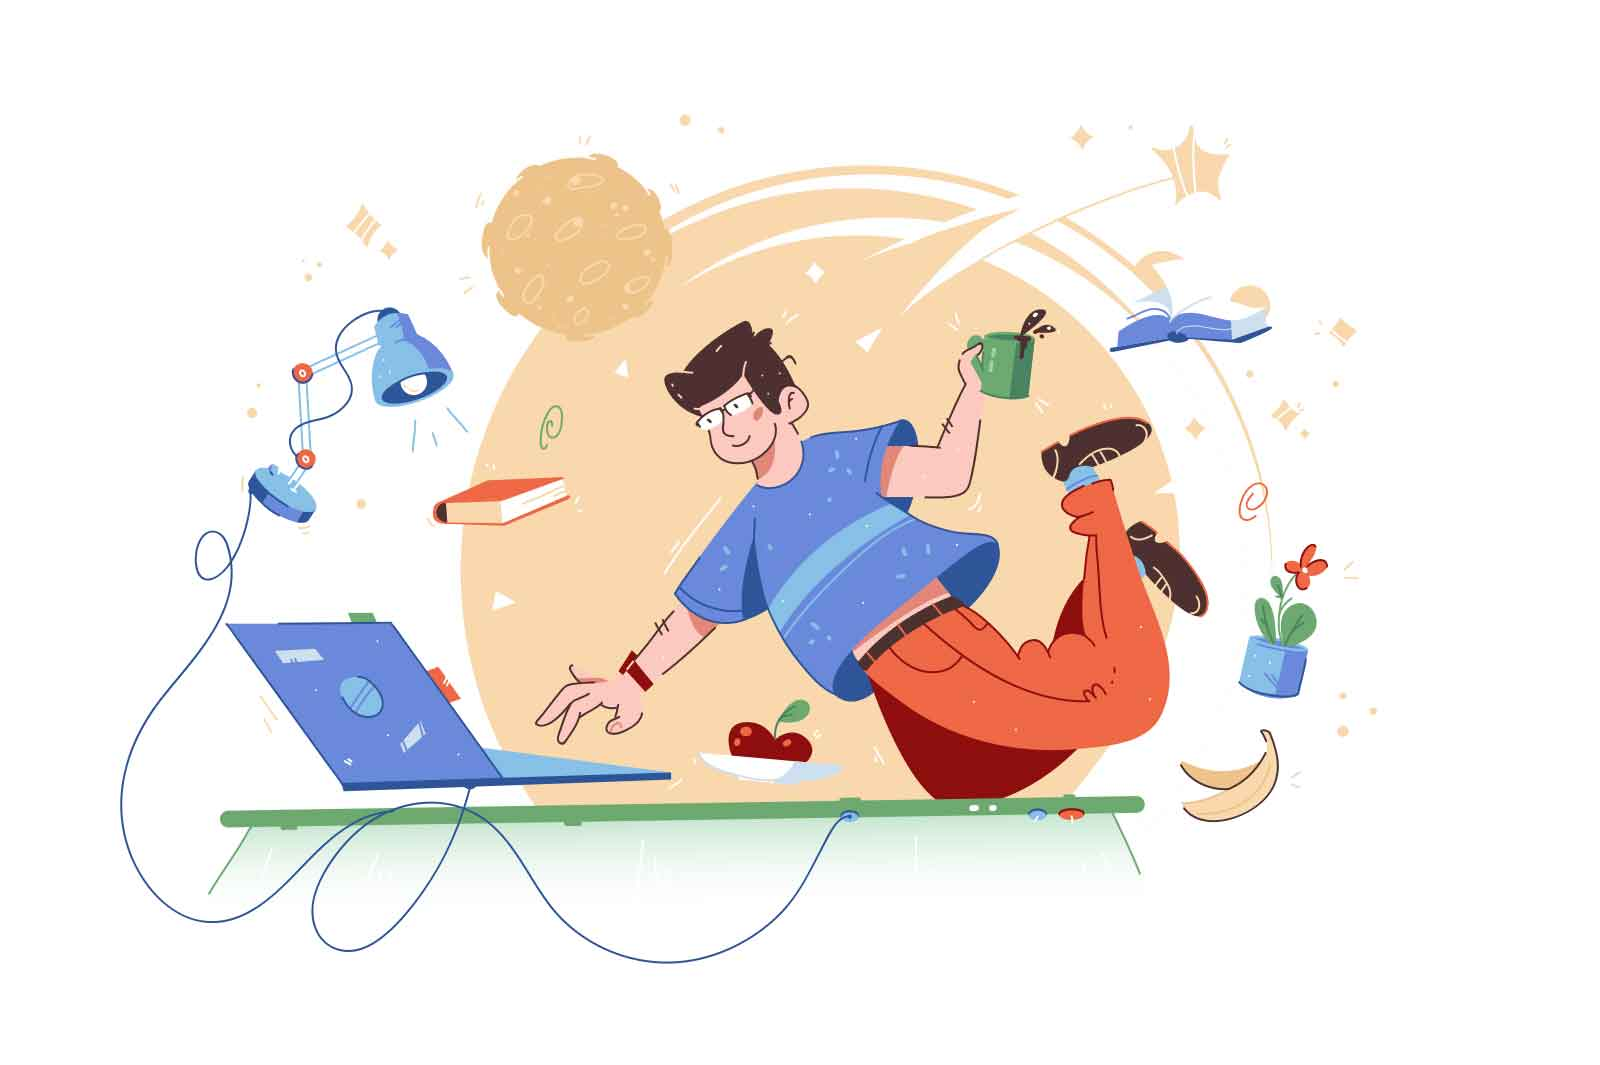 Clever guy fly in work space vector illustration. Creative character floating in workplace flat style. Idea, technology, development concept